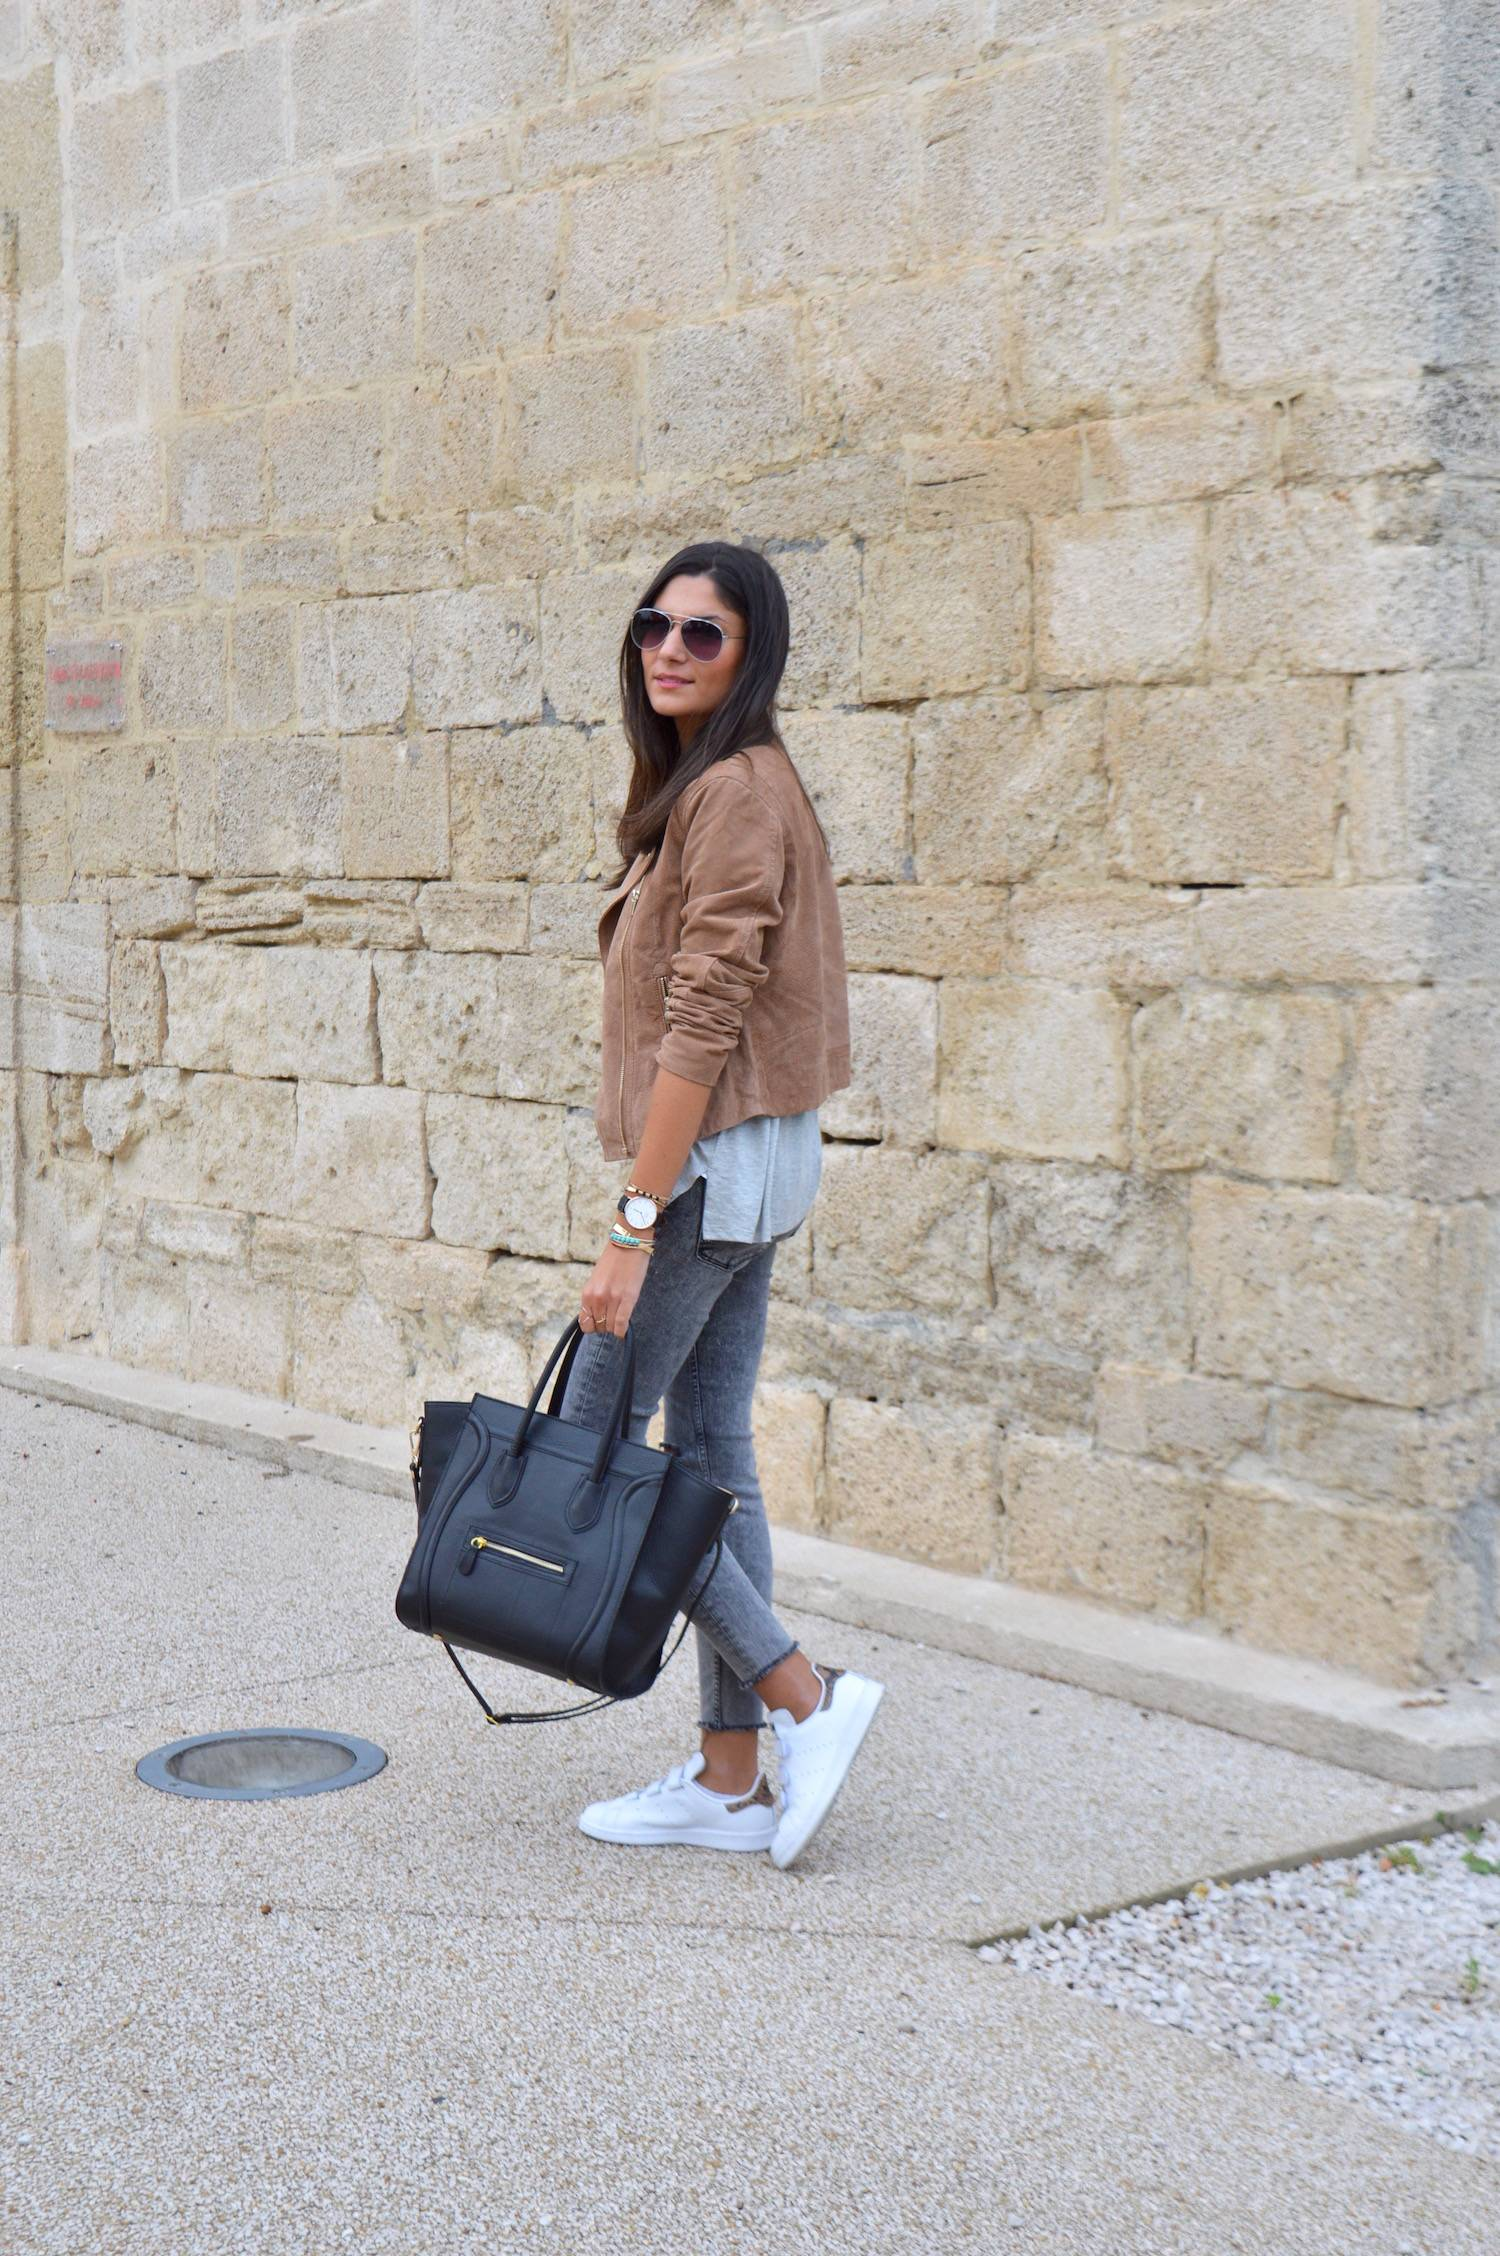 aded3fa27d Federica L. wears a cute suede jacket with skinny jeans and white sneakers.  T